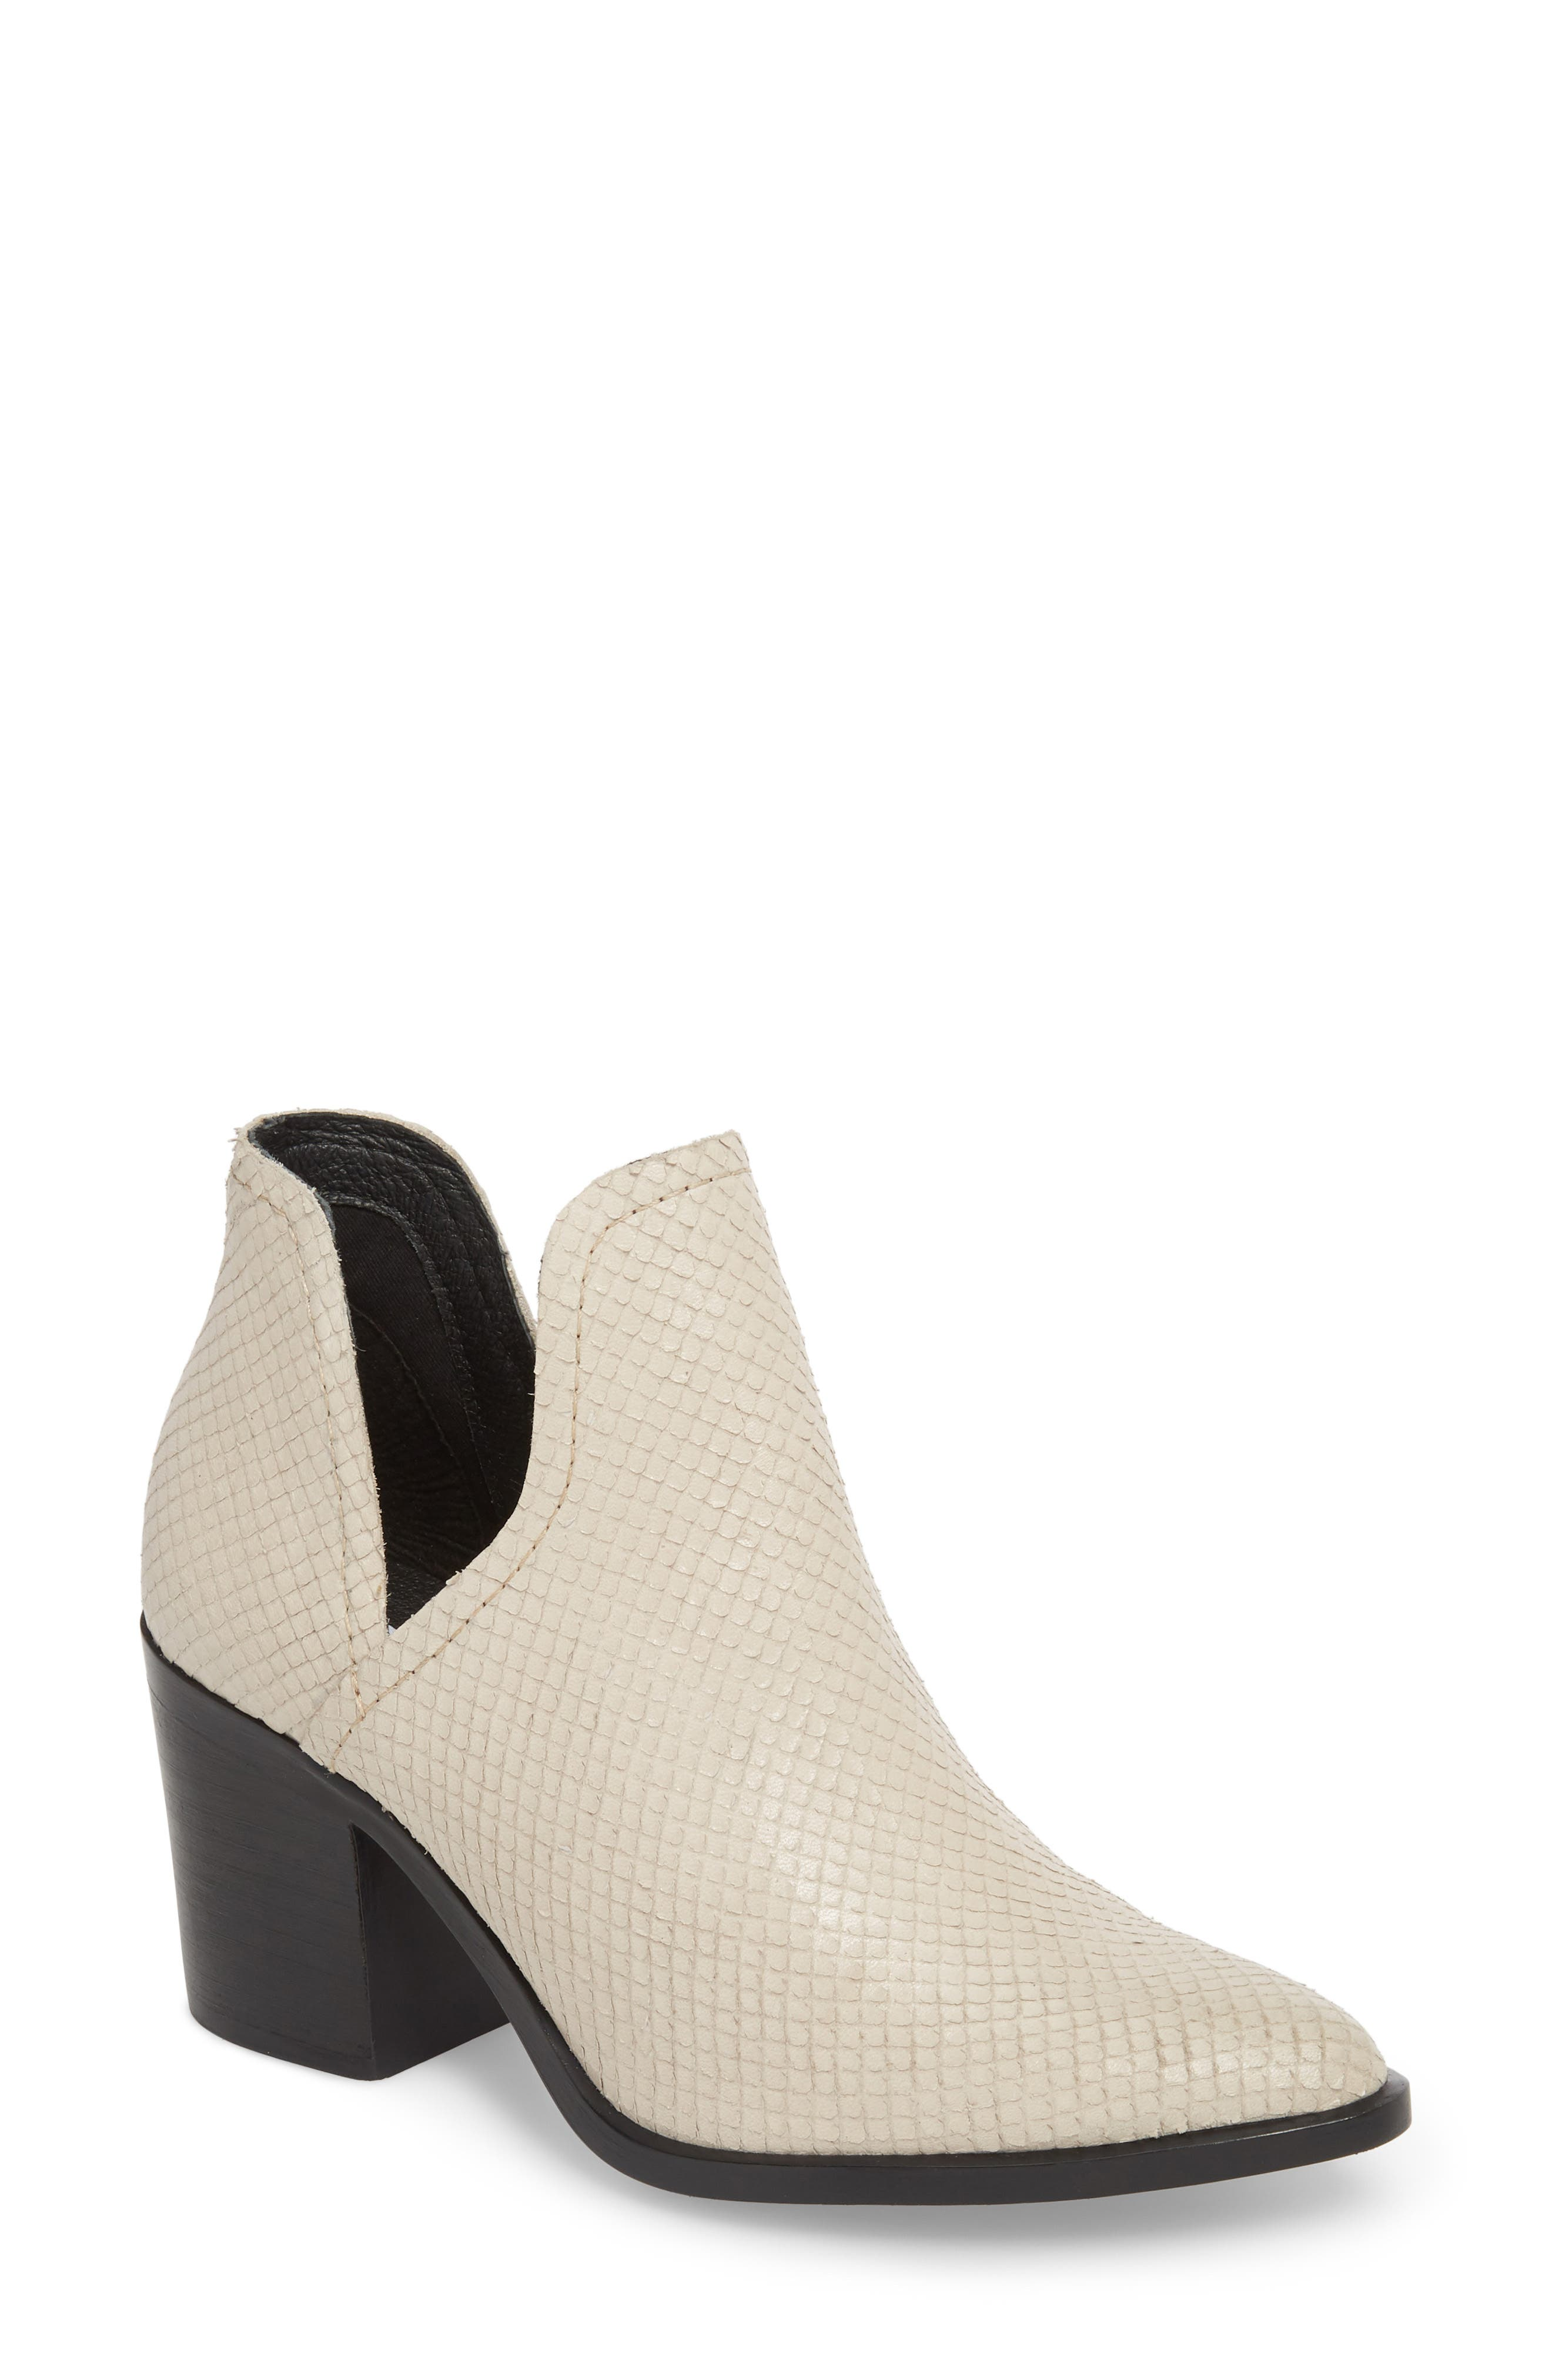 Petra Open Side Bootie,                             Main thumbnail 1, color,                             White Snake Print